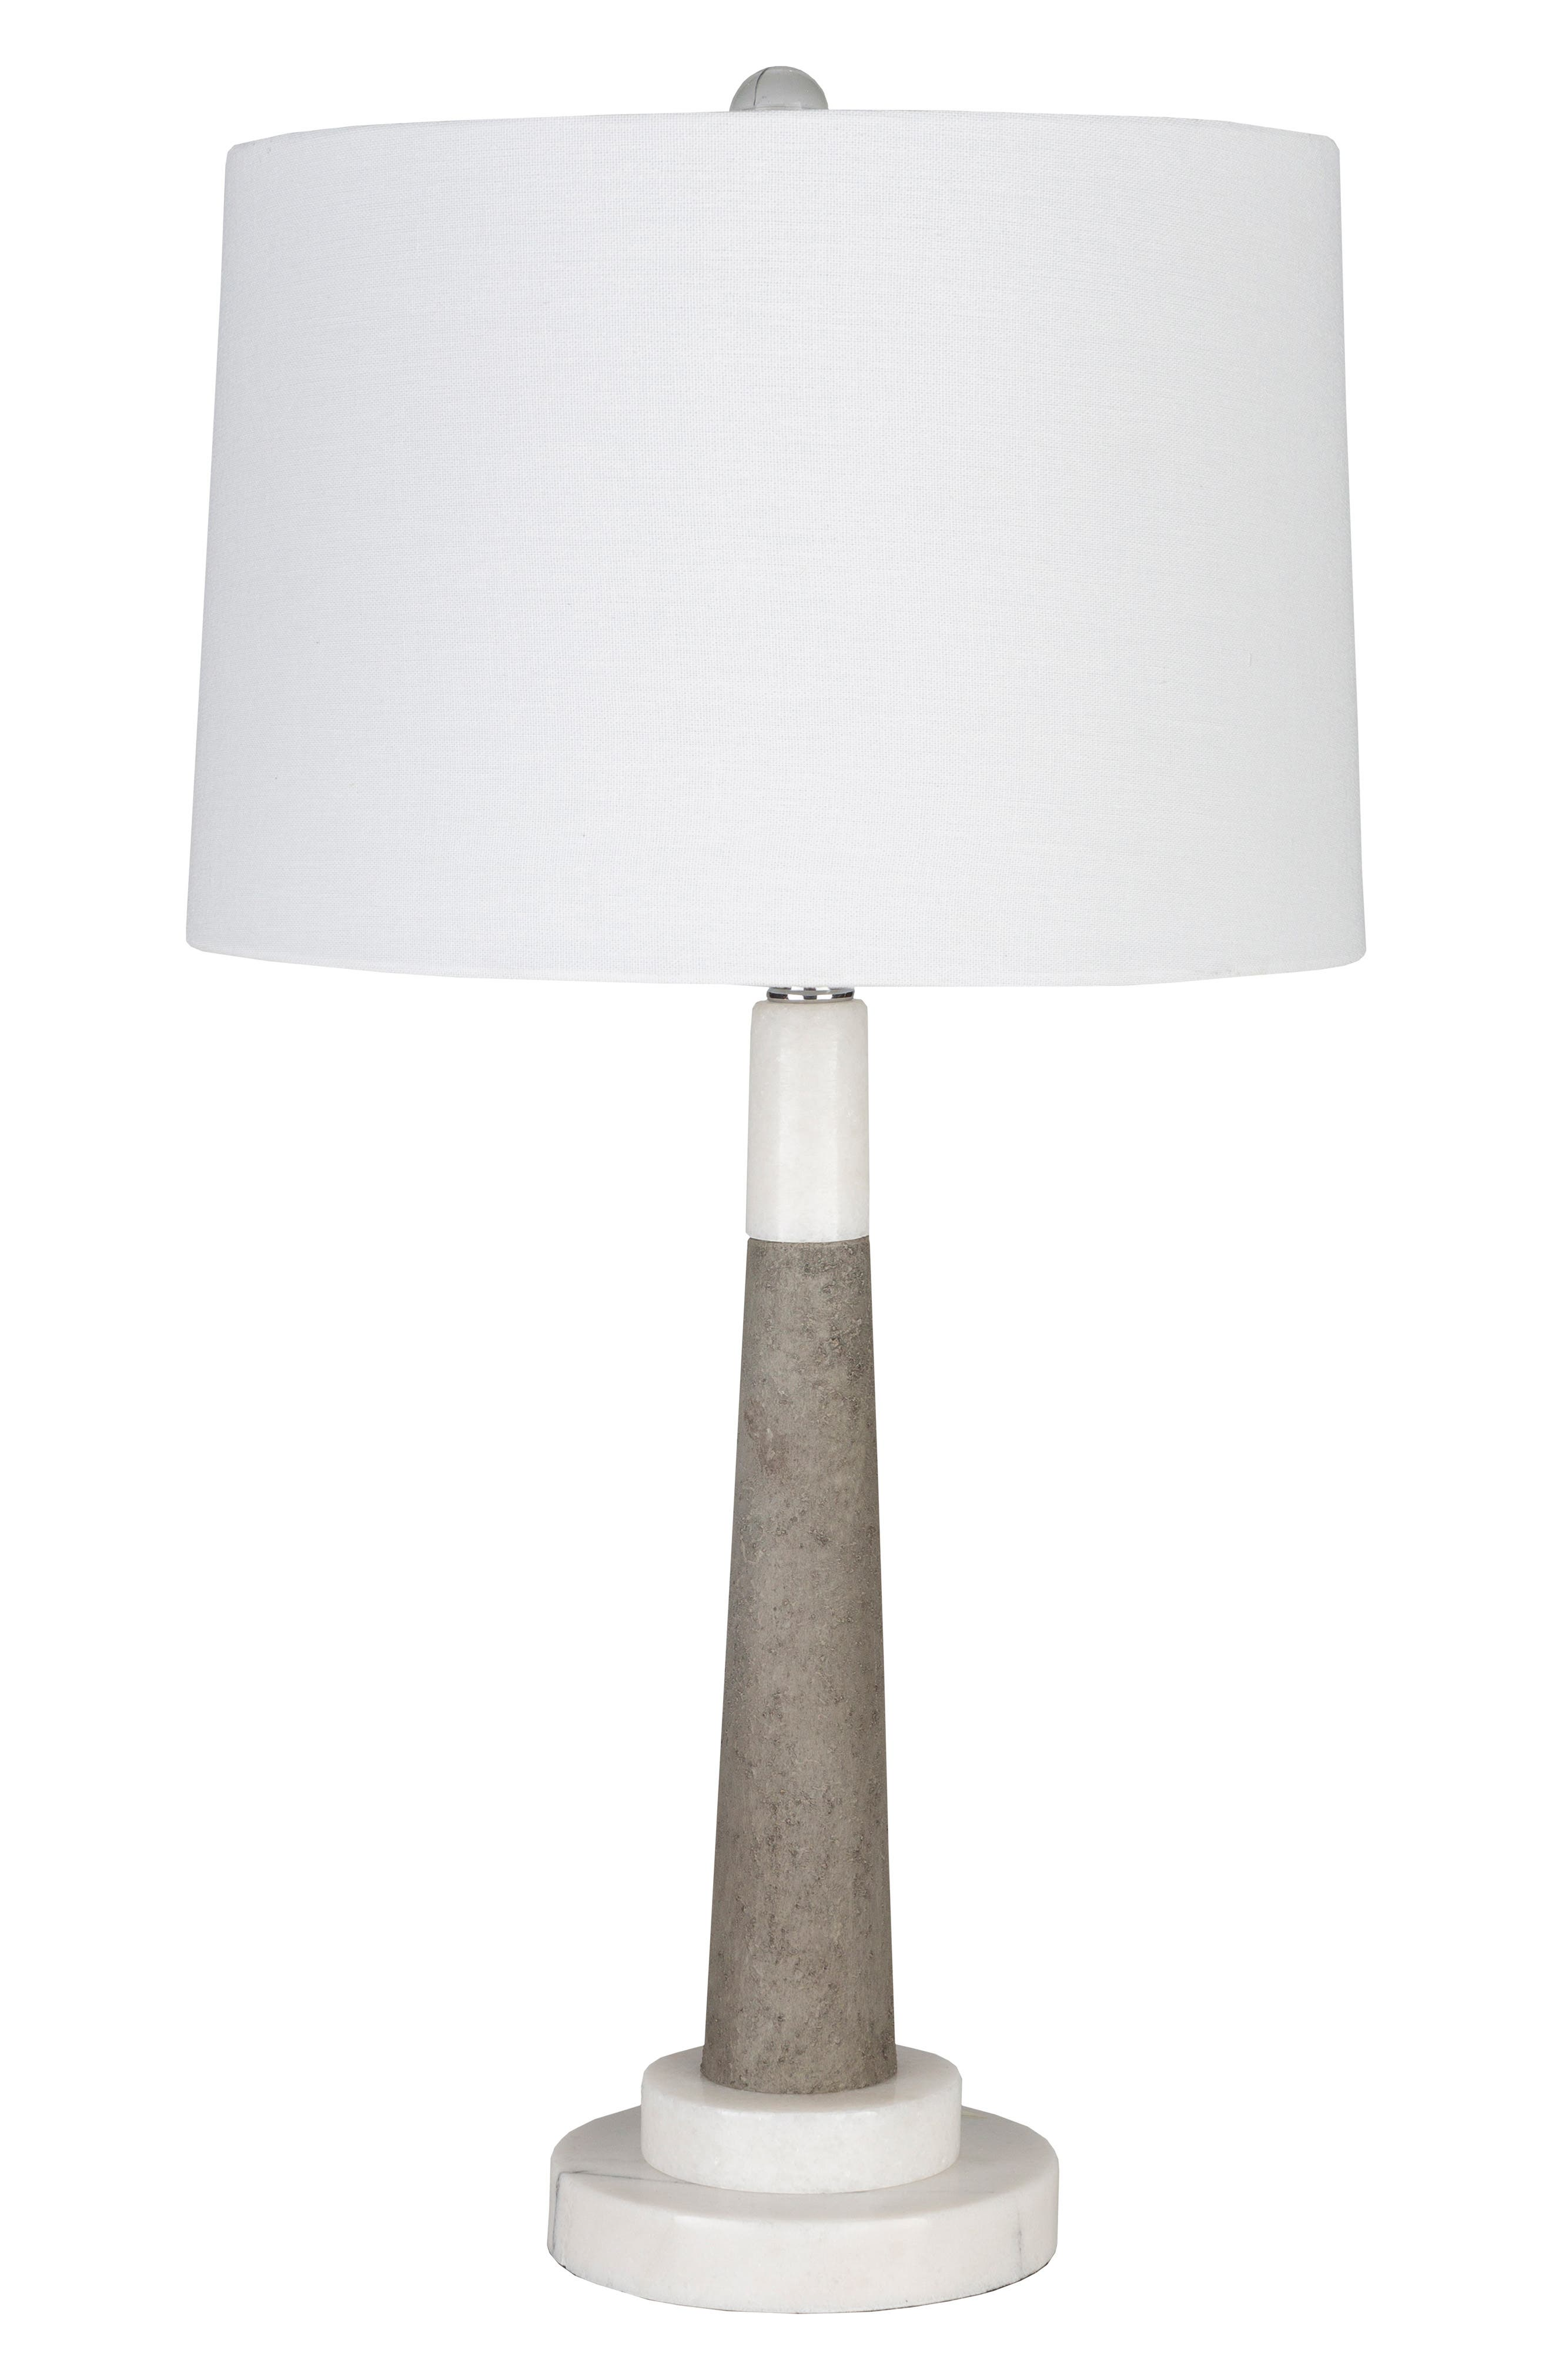 Surya Home Ellison Floor Lamp Size One Size  White